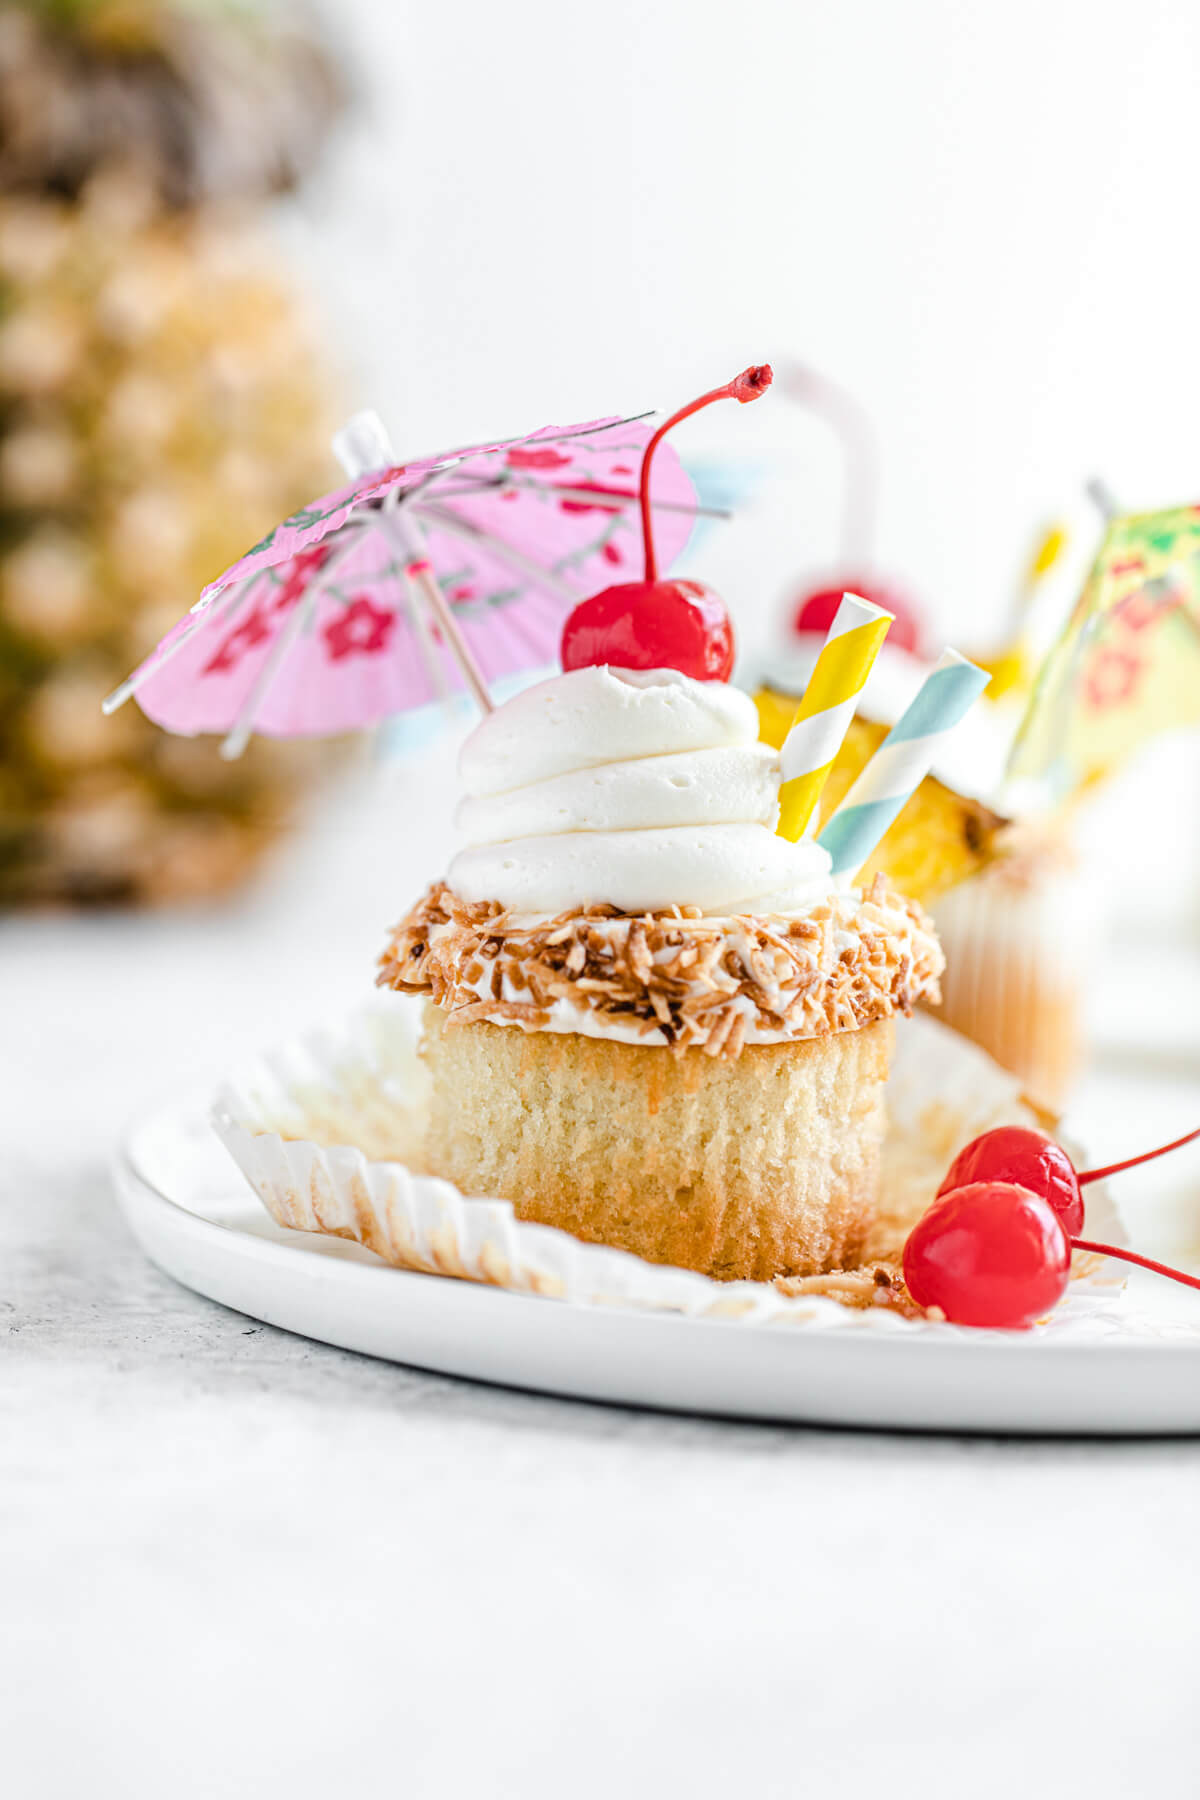 unwrapped cupcake on a white plate with pineapple in the background